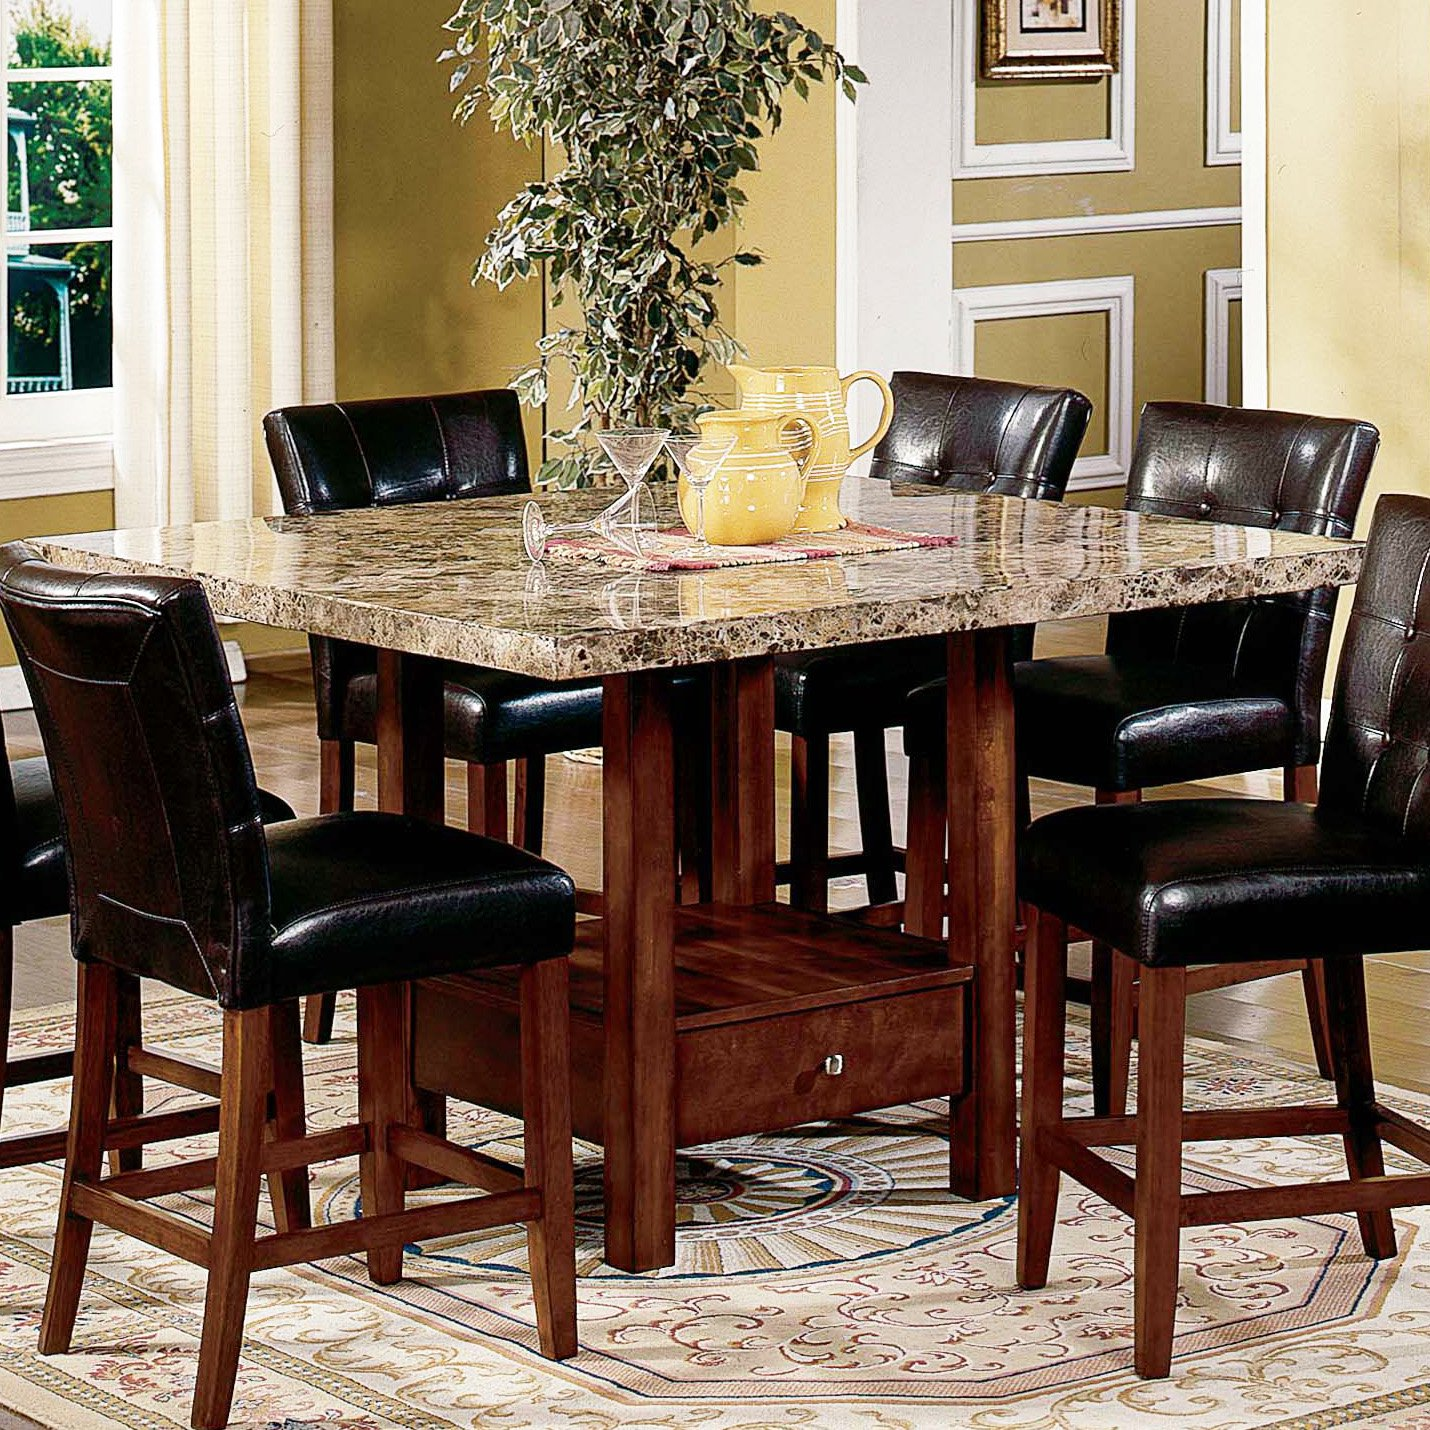 High top kitchen table sets homesfeed for Kitchen set 2015